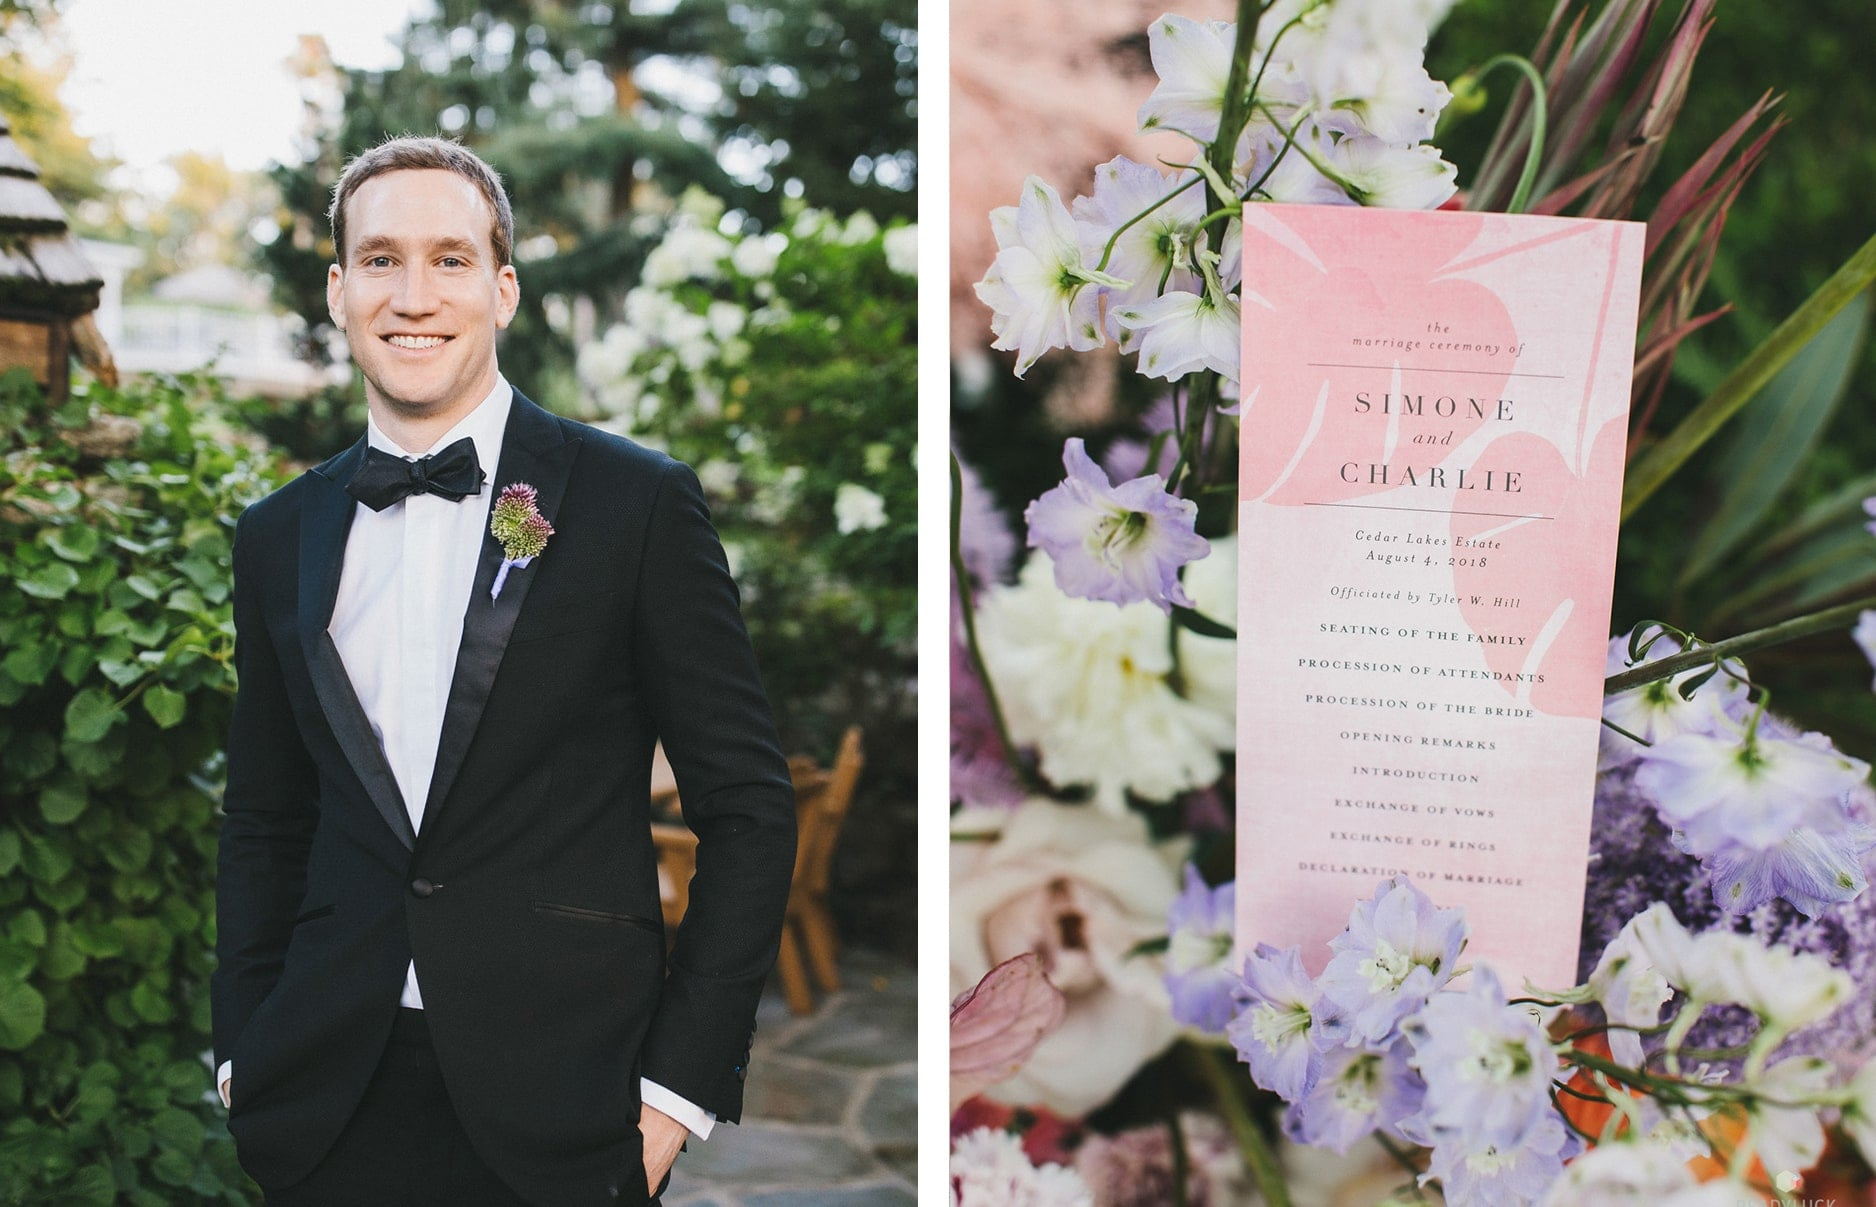 Photo of Groom, Ceremony Program in Custom Color